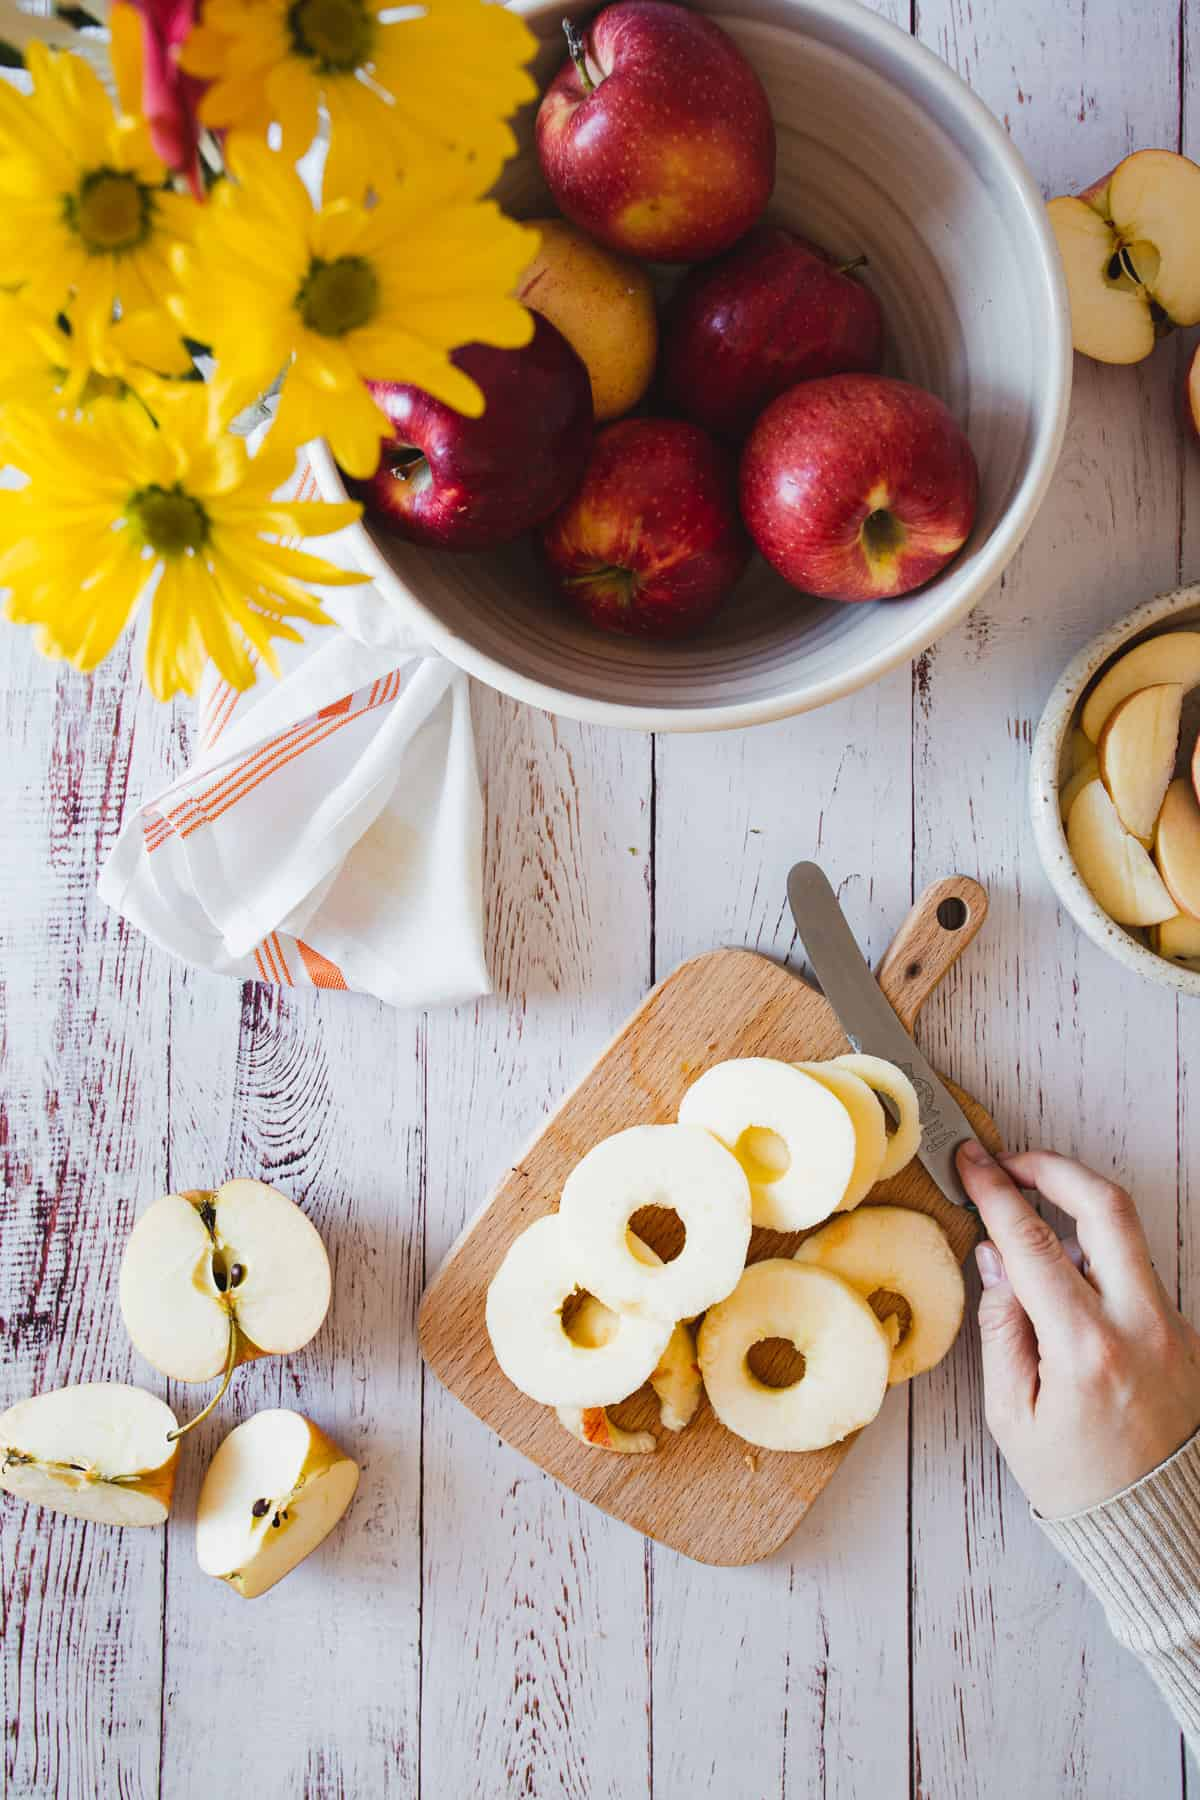 sliced apples on a cutting board with knife